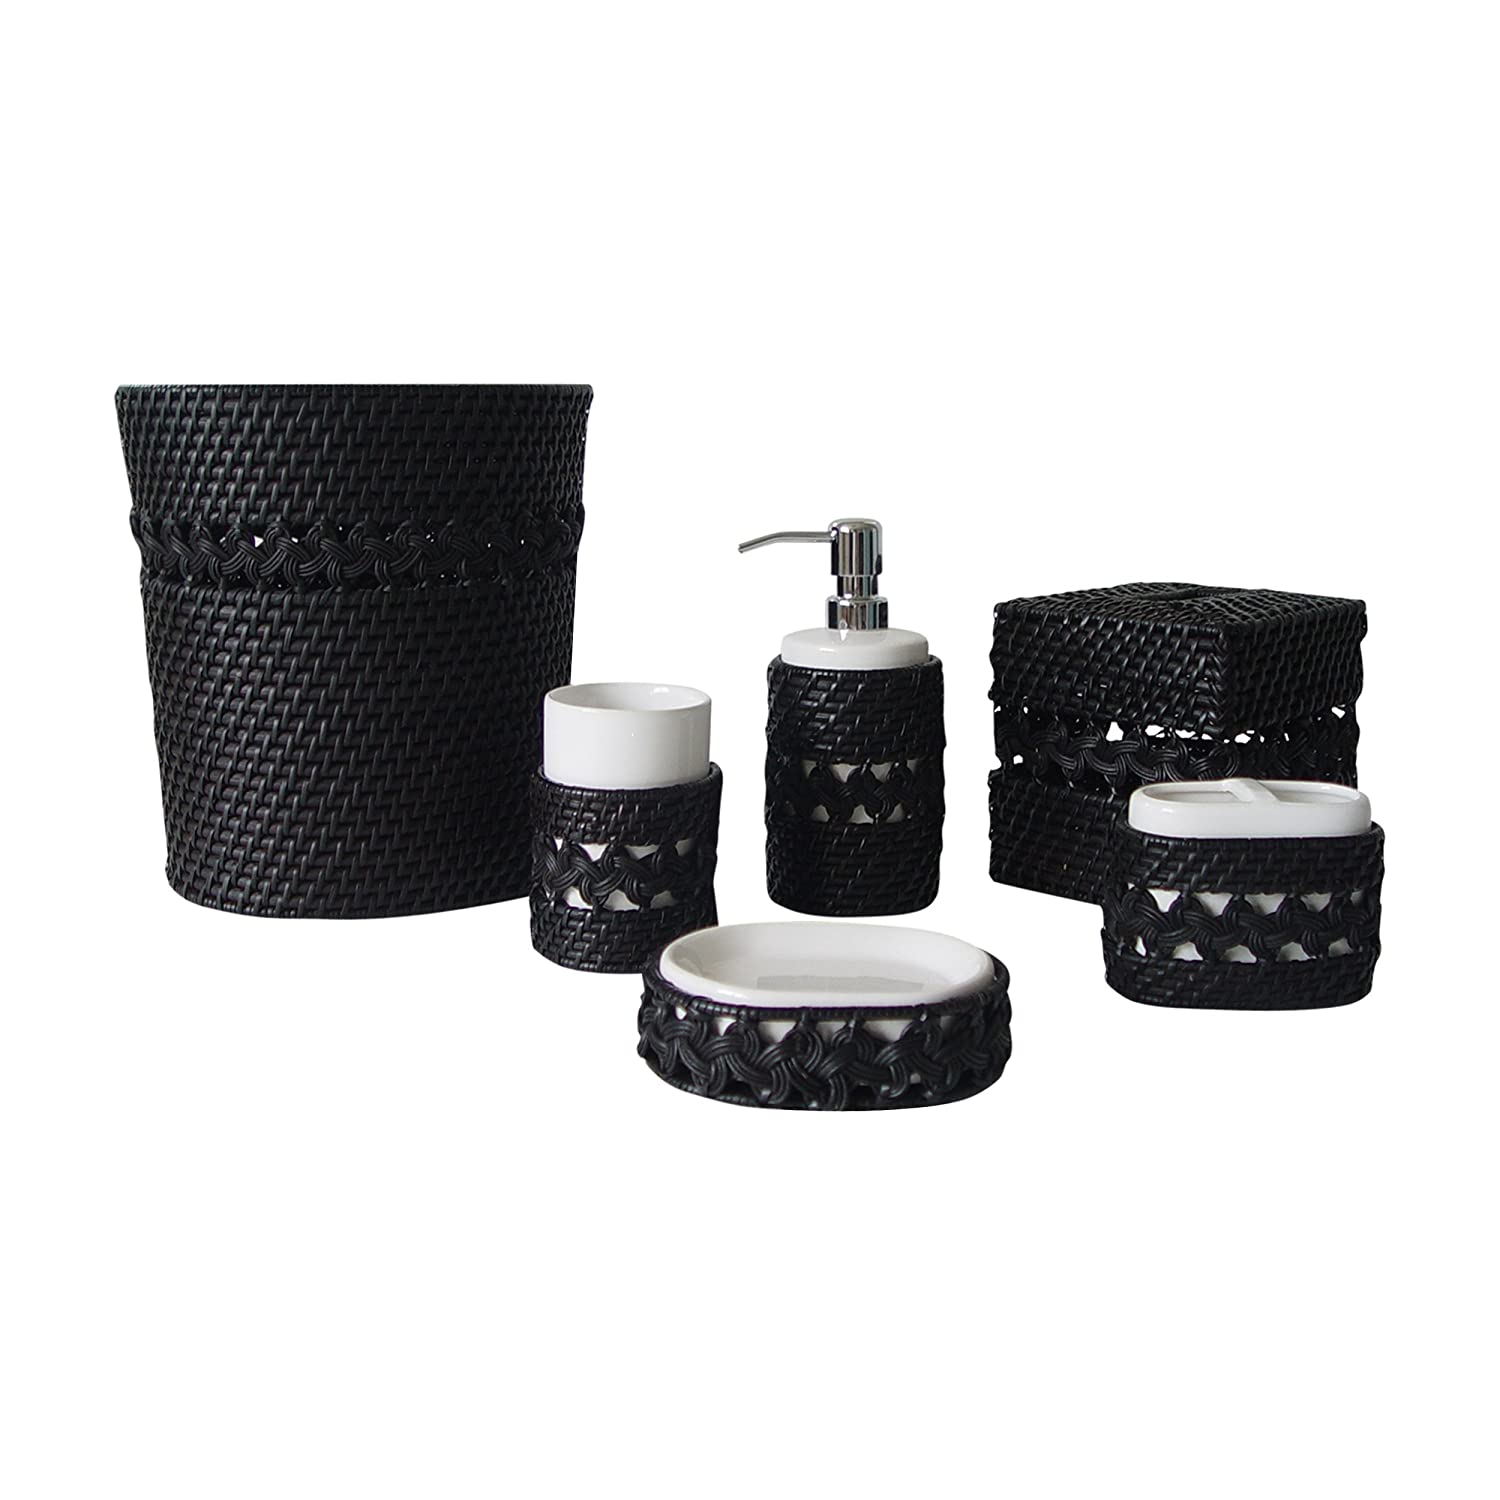 Check price check price check price for Black white bathroom set